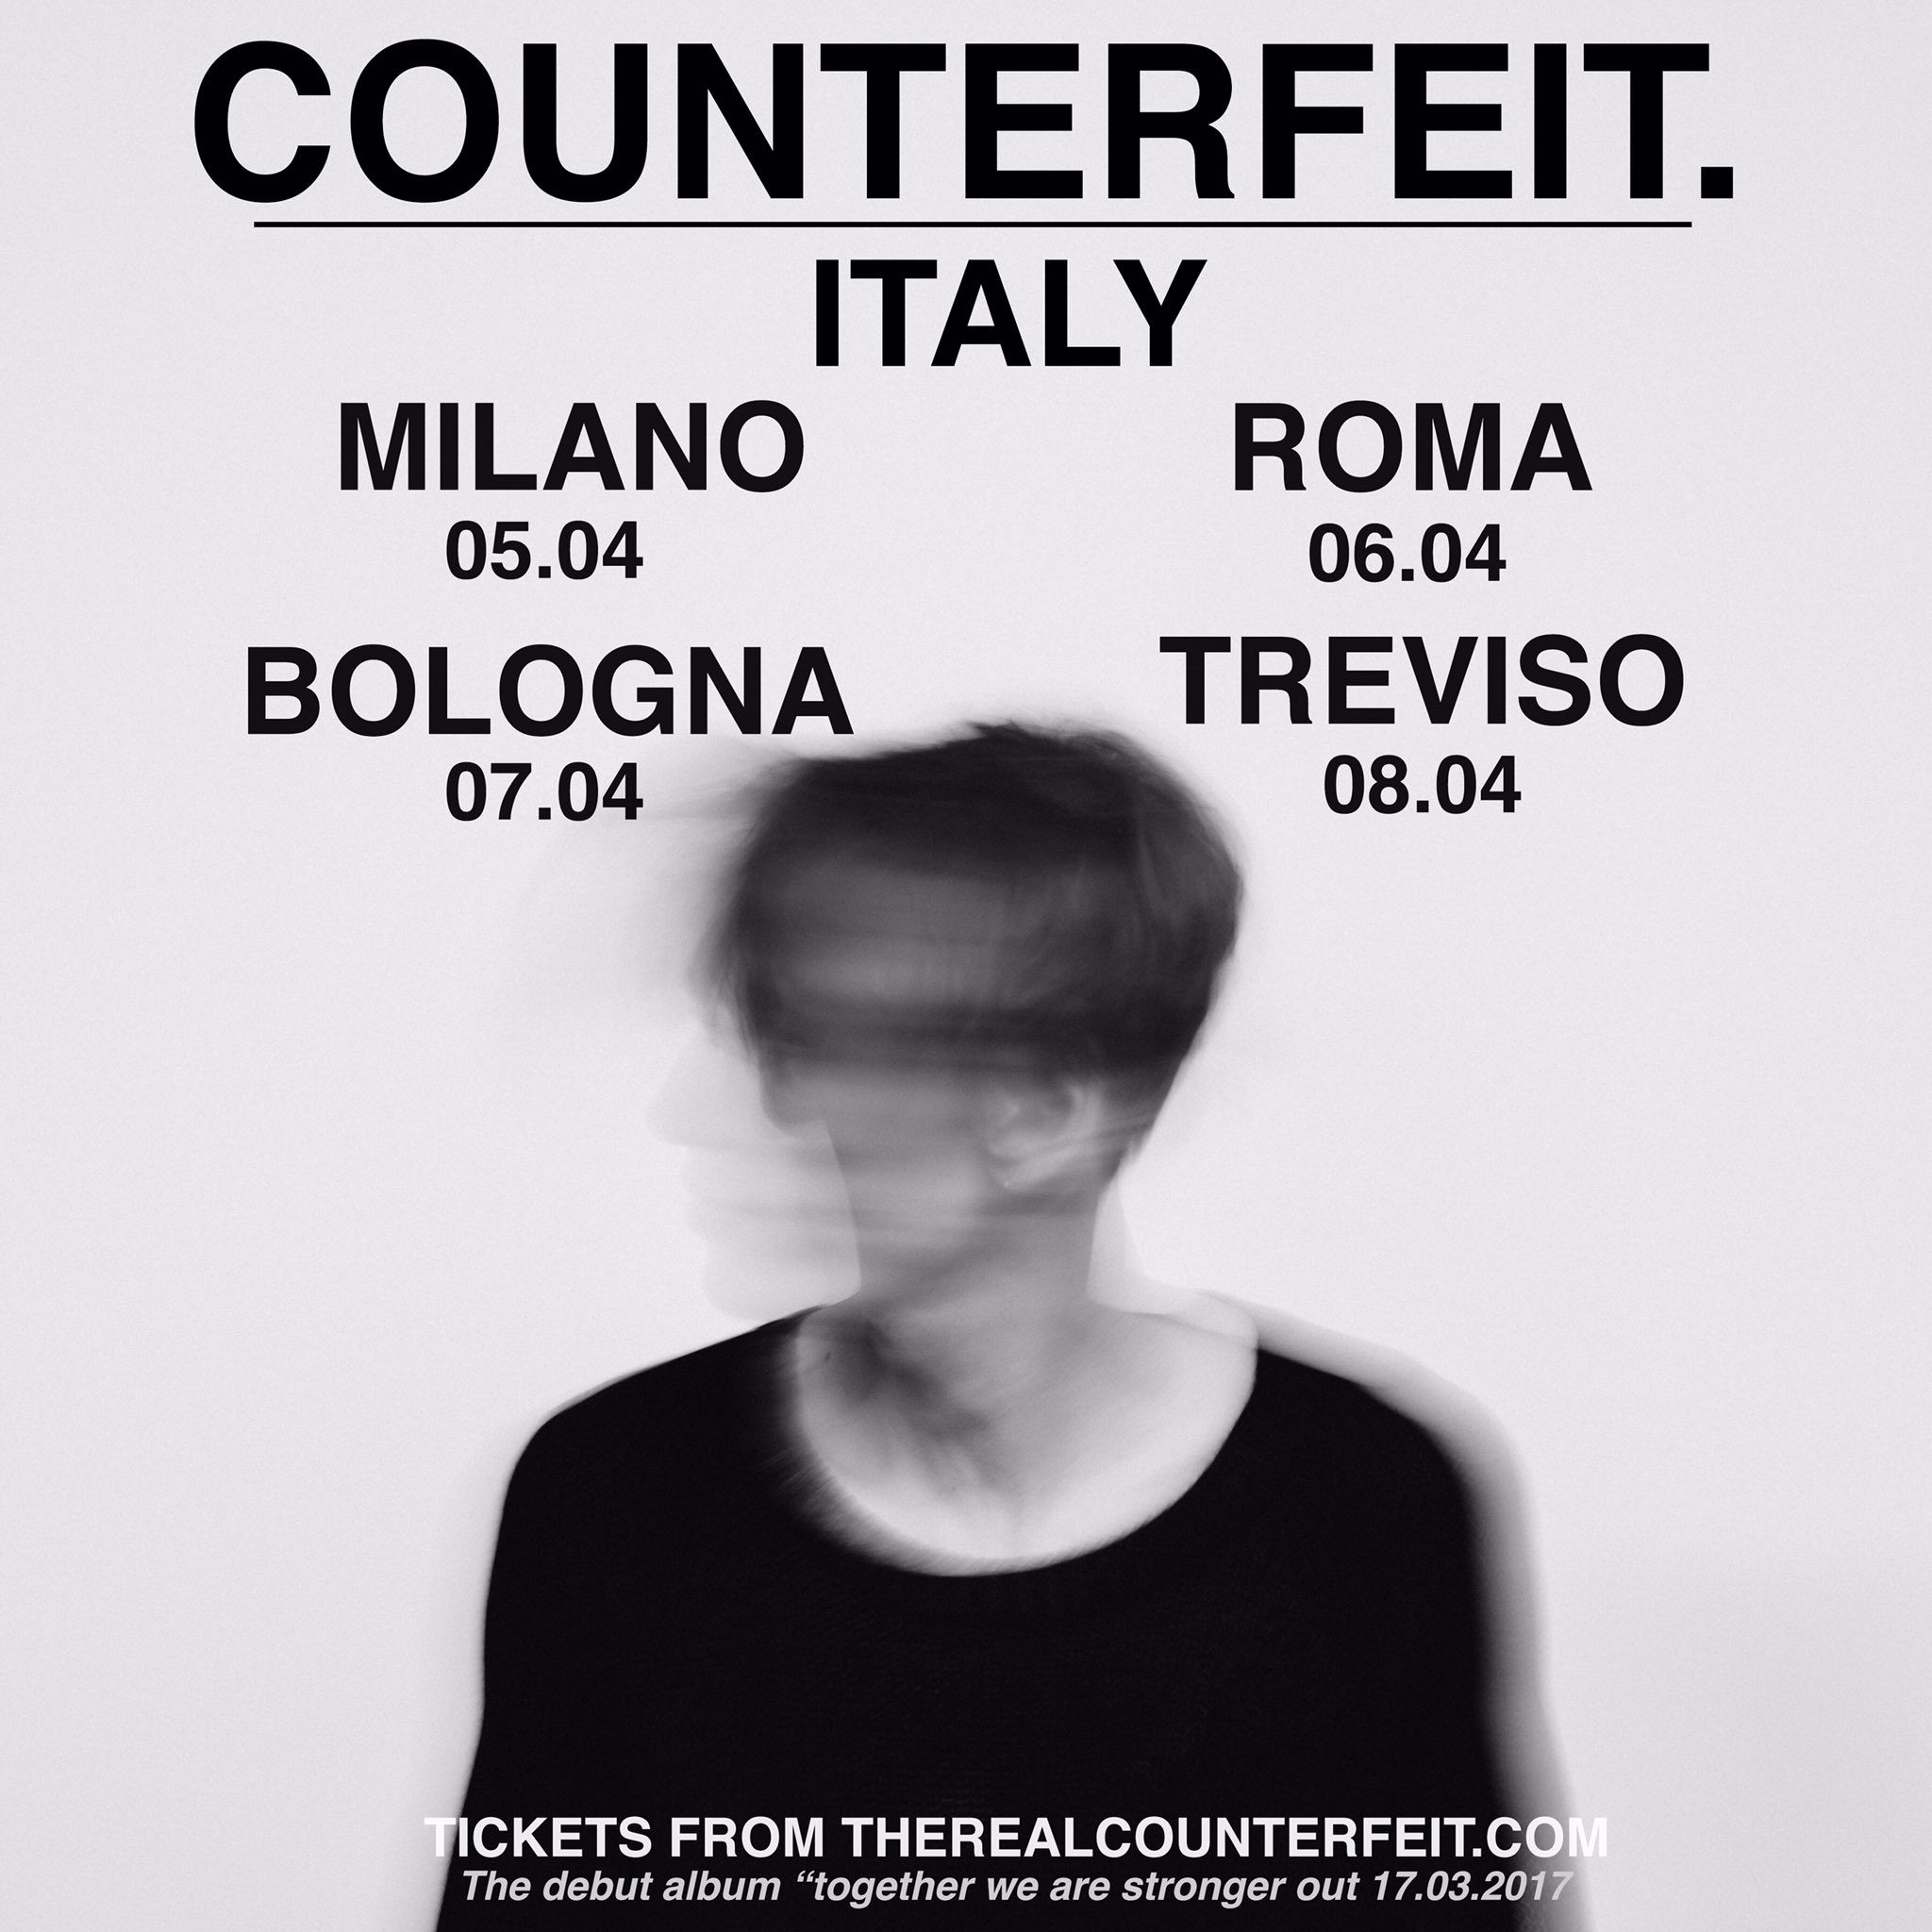 ITALY you have 30 days left until this. Tickets from https://t.co/ArEdyMcxKq https://t.co/cP8P2eTDcc